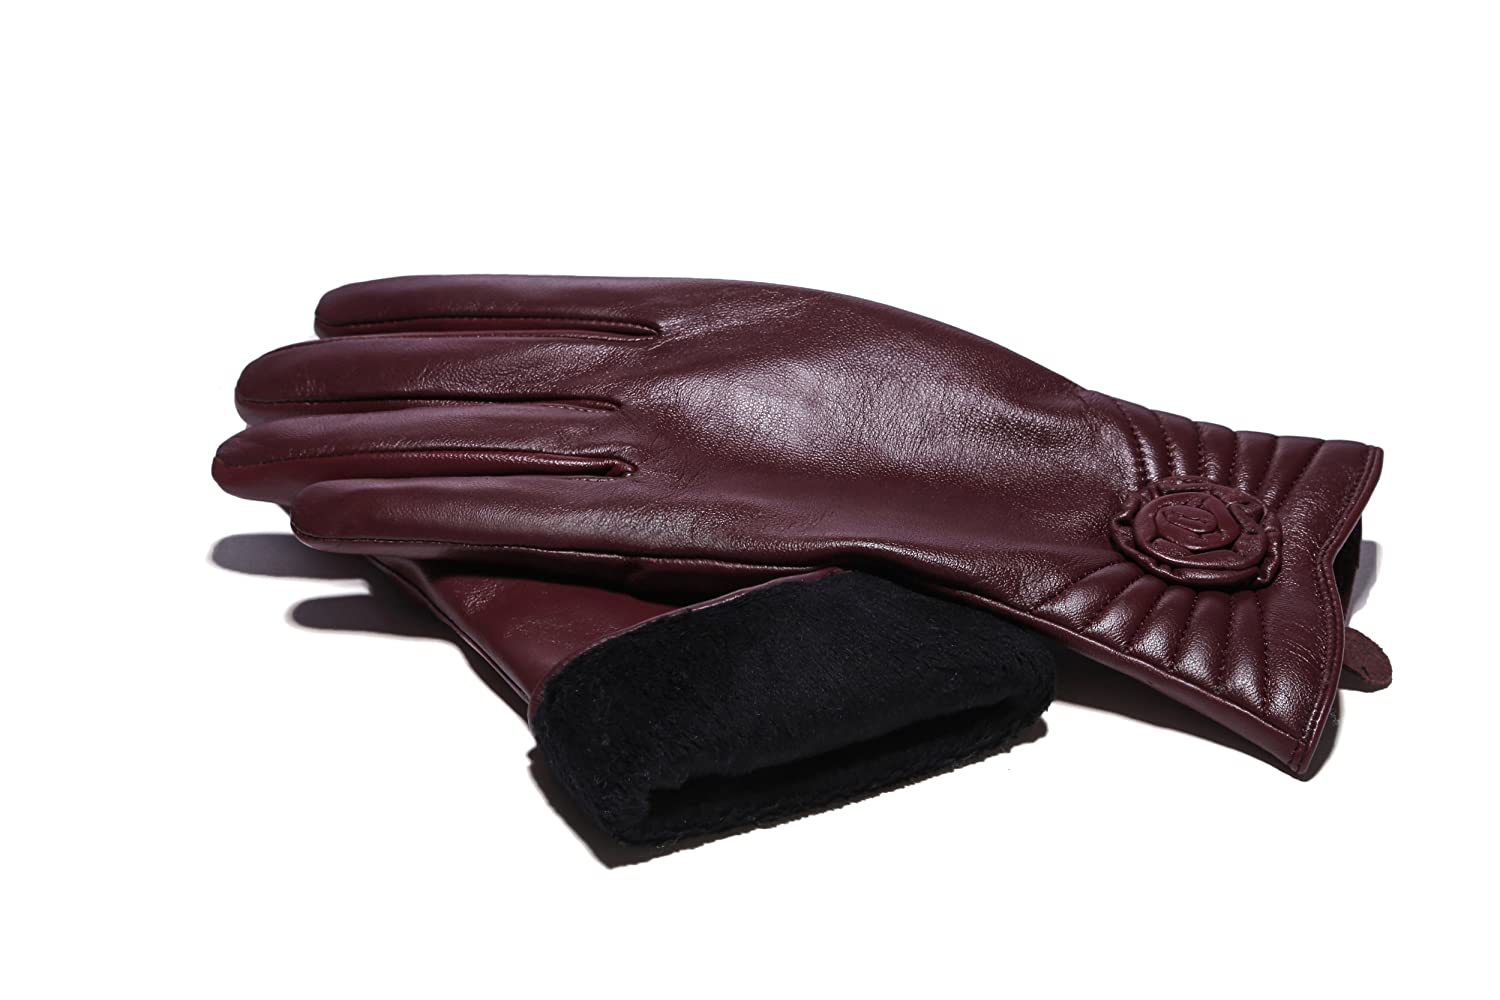 MoDA Women's Ms. Brussels Genuine Leather Fully Lined Winter Gloves with Touch Function C0156-BK-M